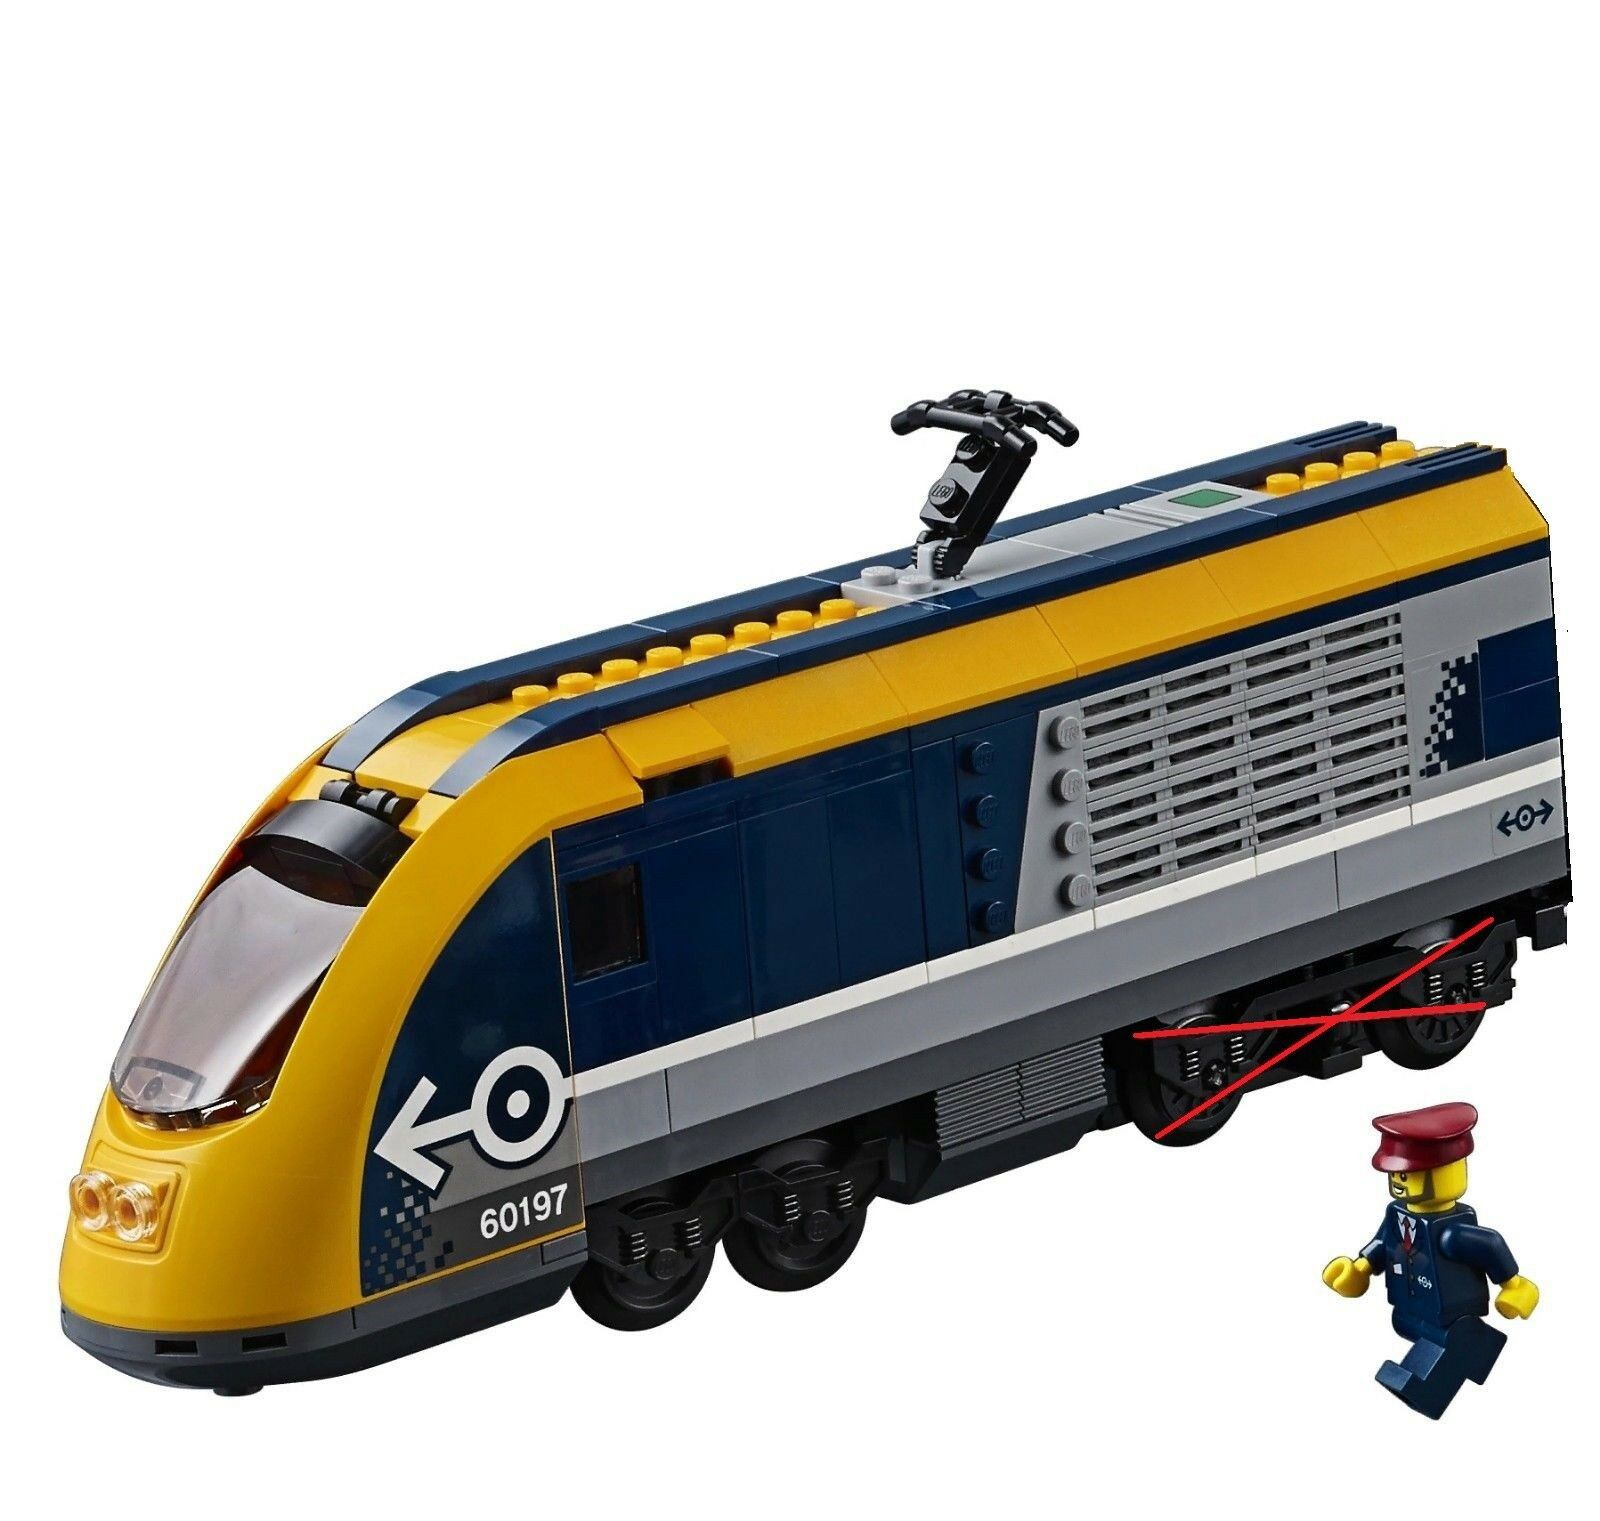 NEW LEGO City Passenger train 60197 Locomotive only - No Powered UP